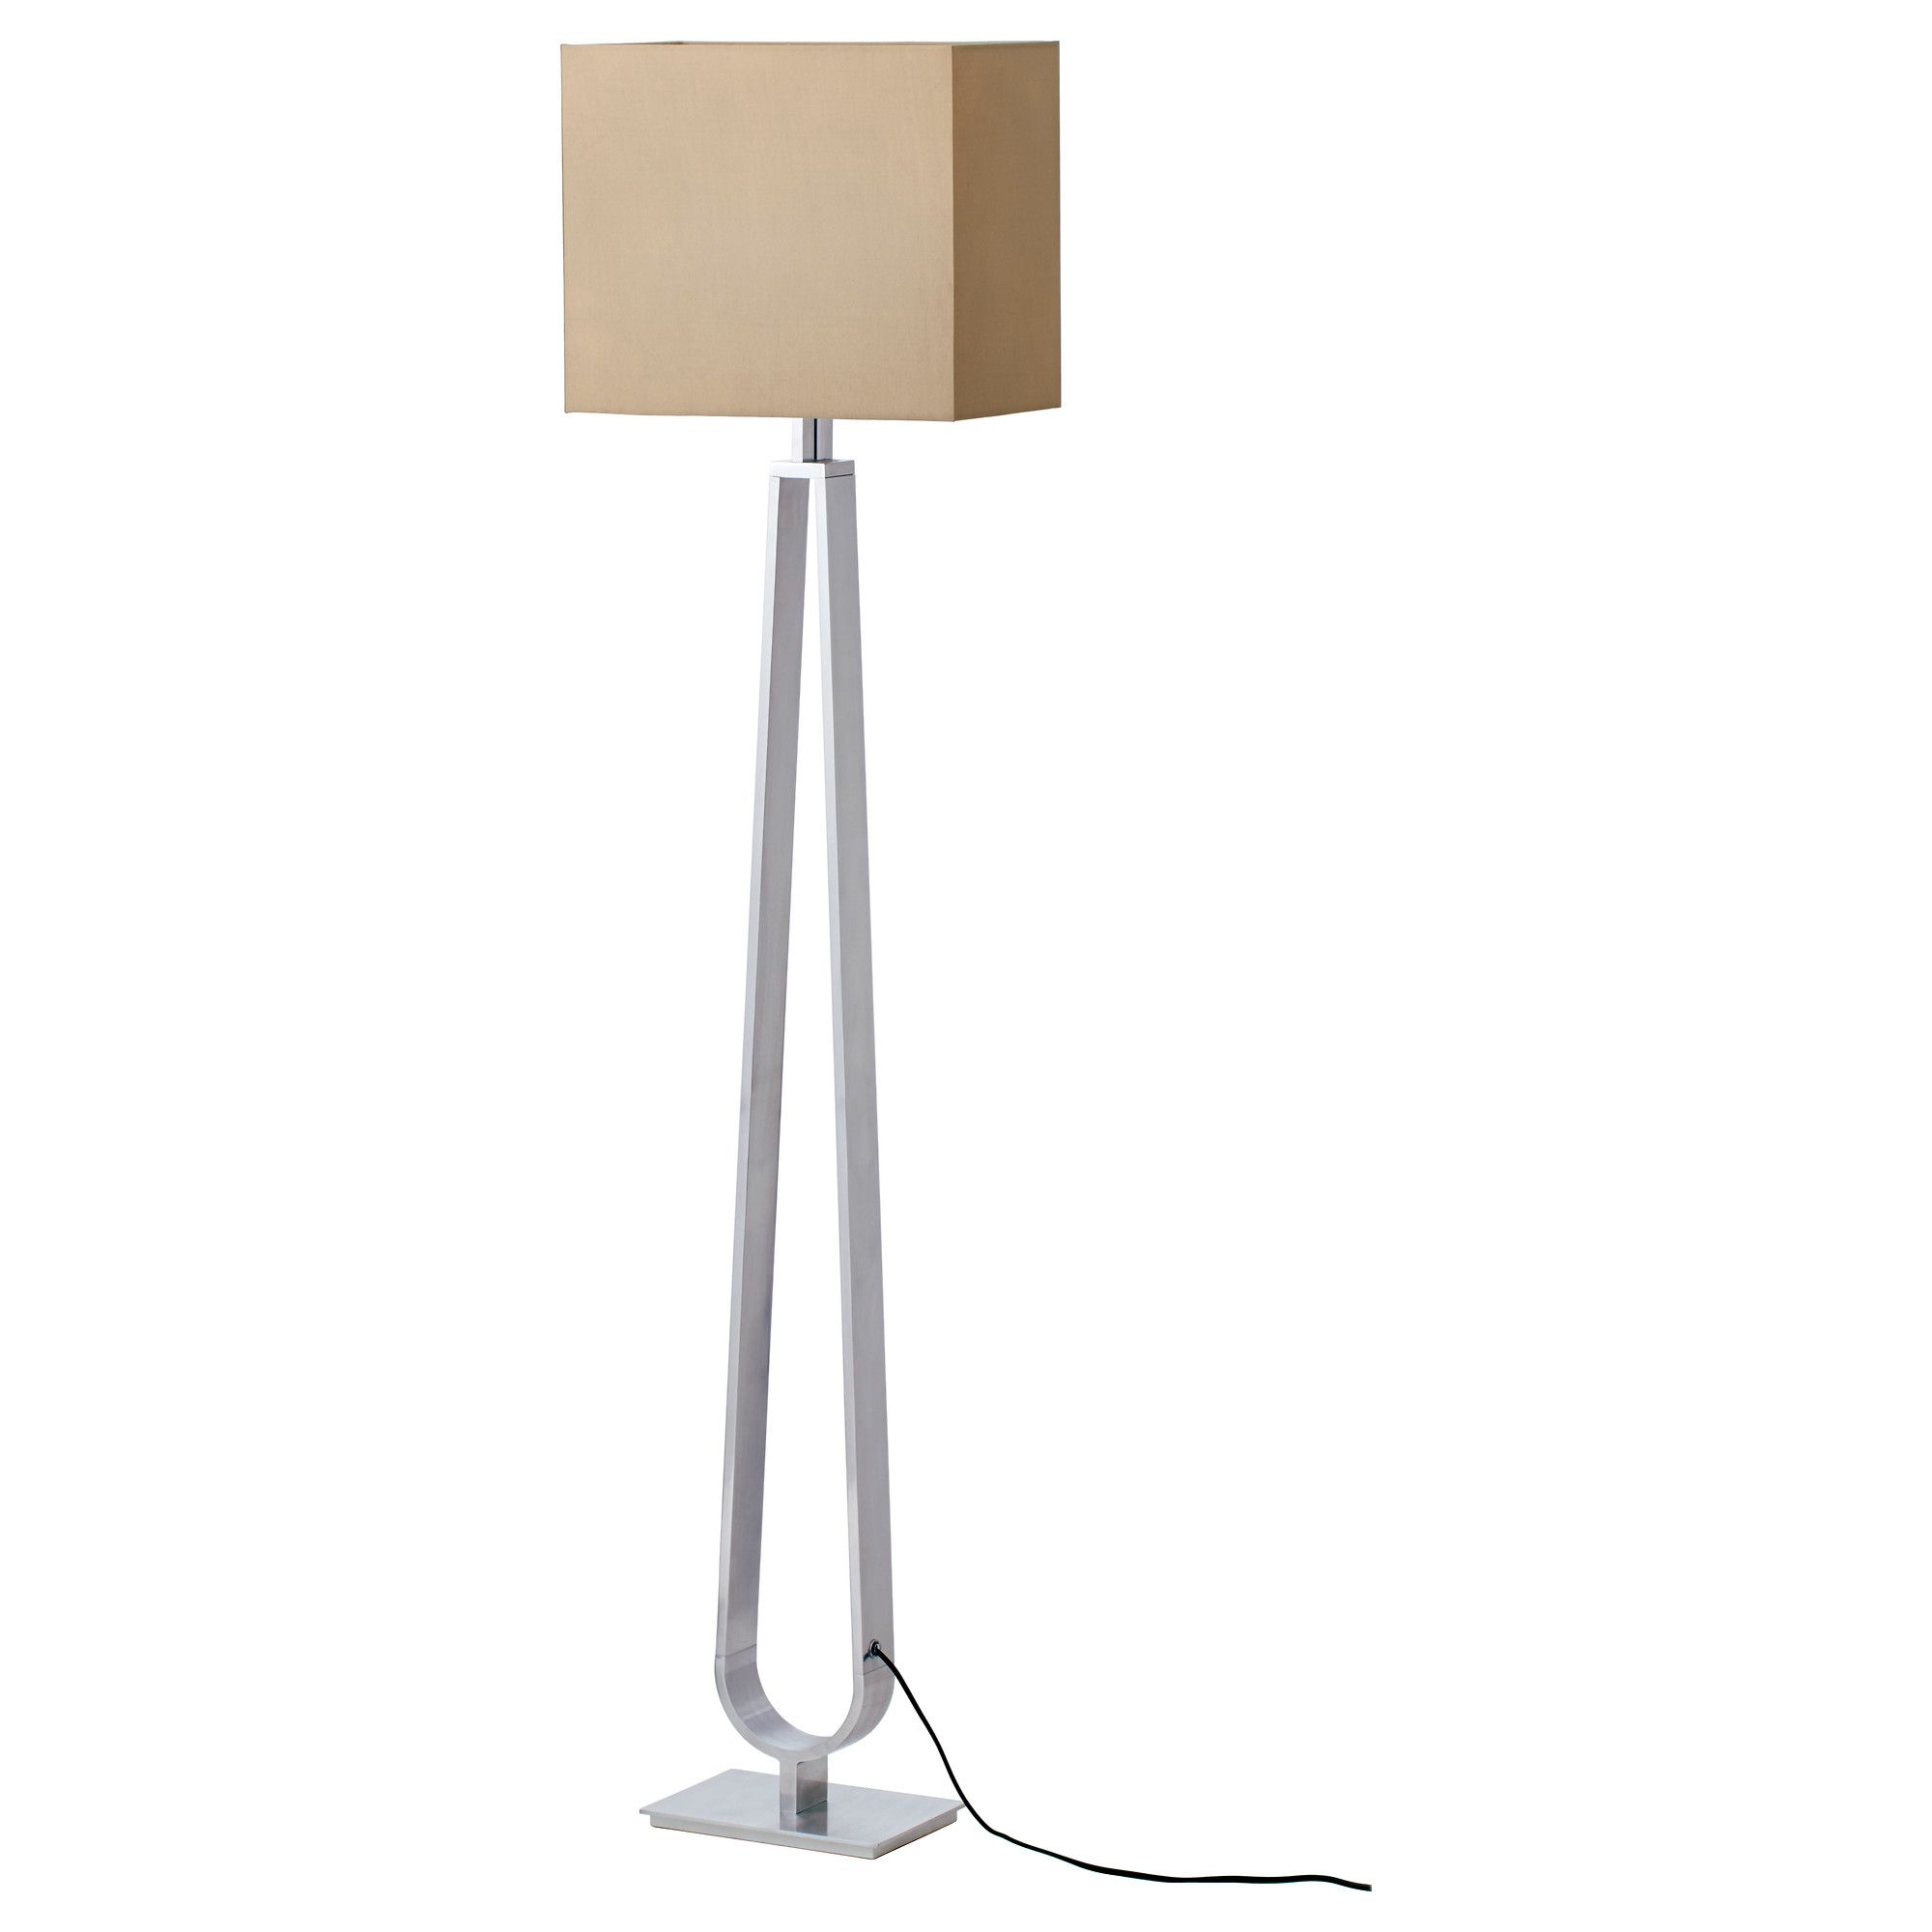 Us Furniture And Home Furnishings Adjustable Floor Lamp Floor Lamp Modern Floor Lamps